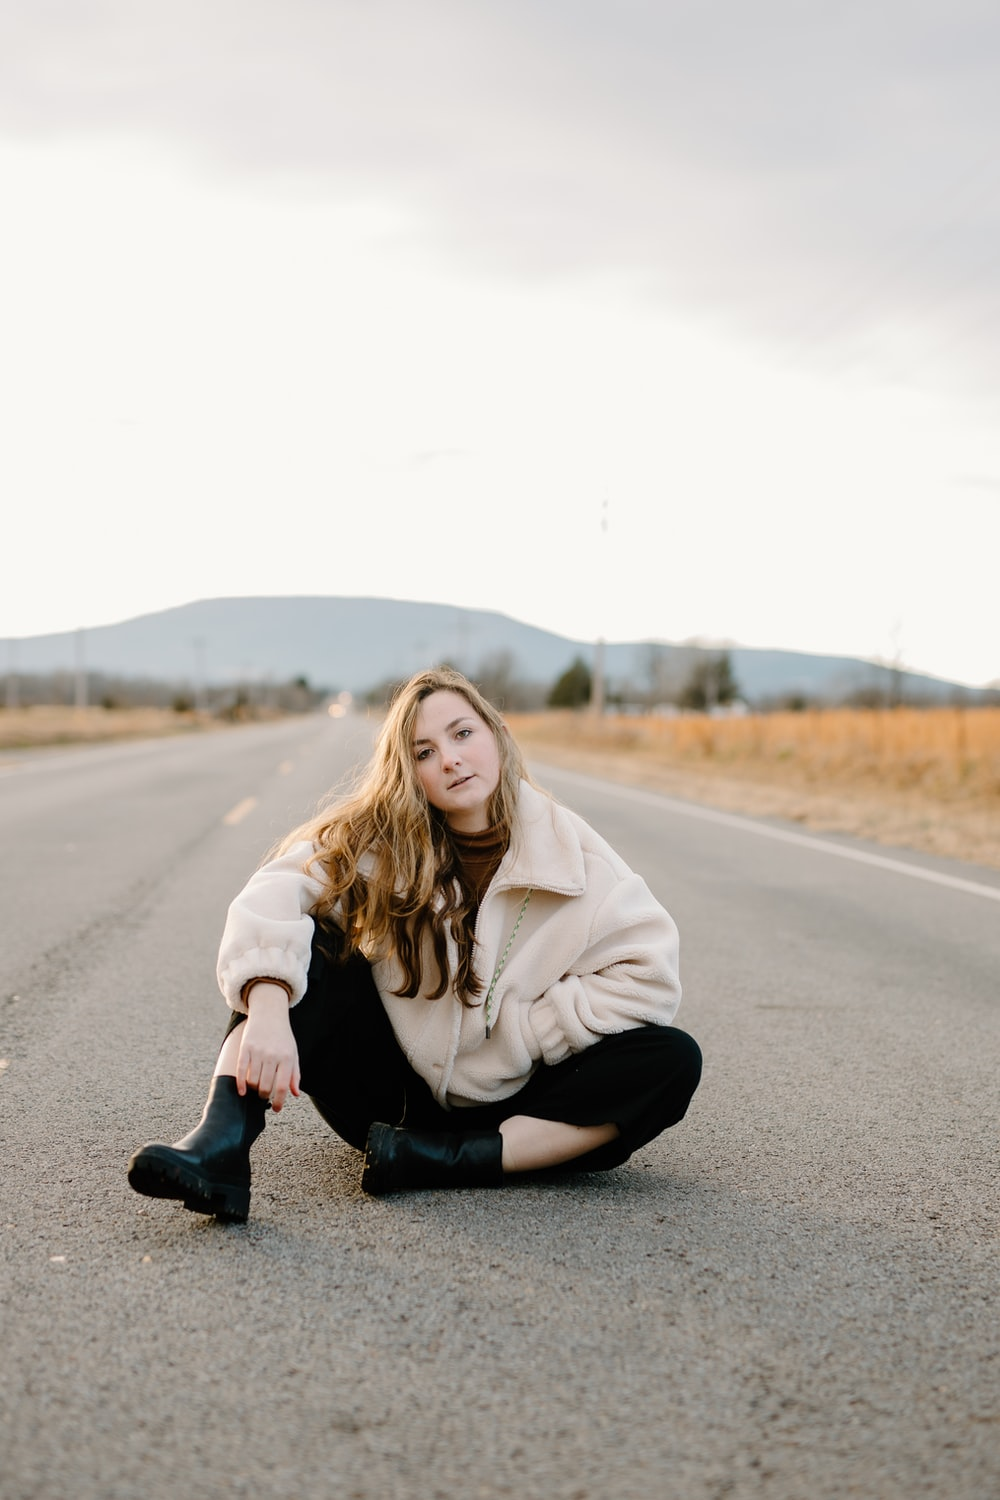 woman in white hoodie and black pants sitting on road during daytime